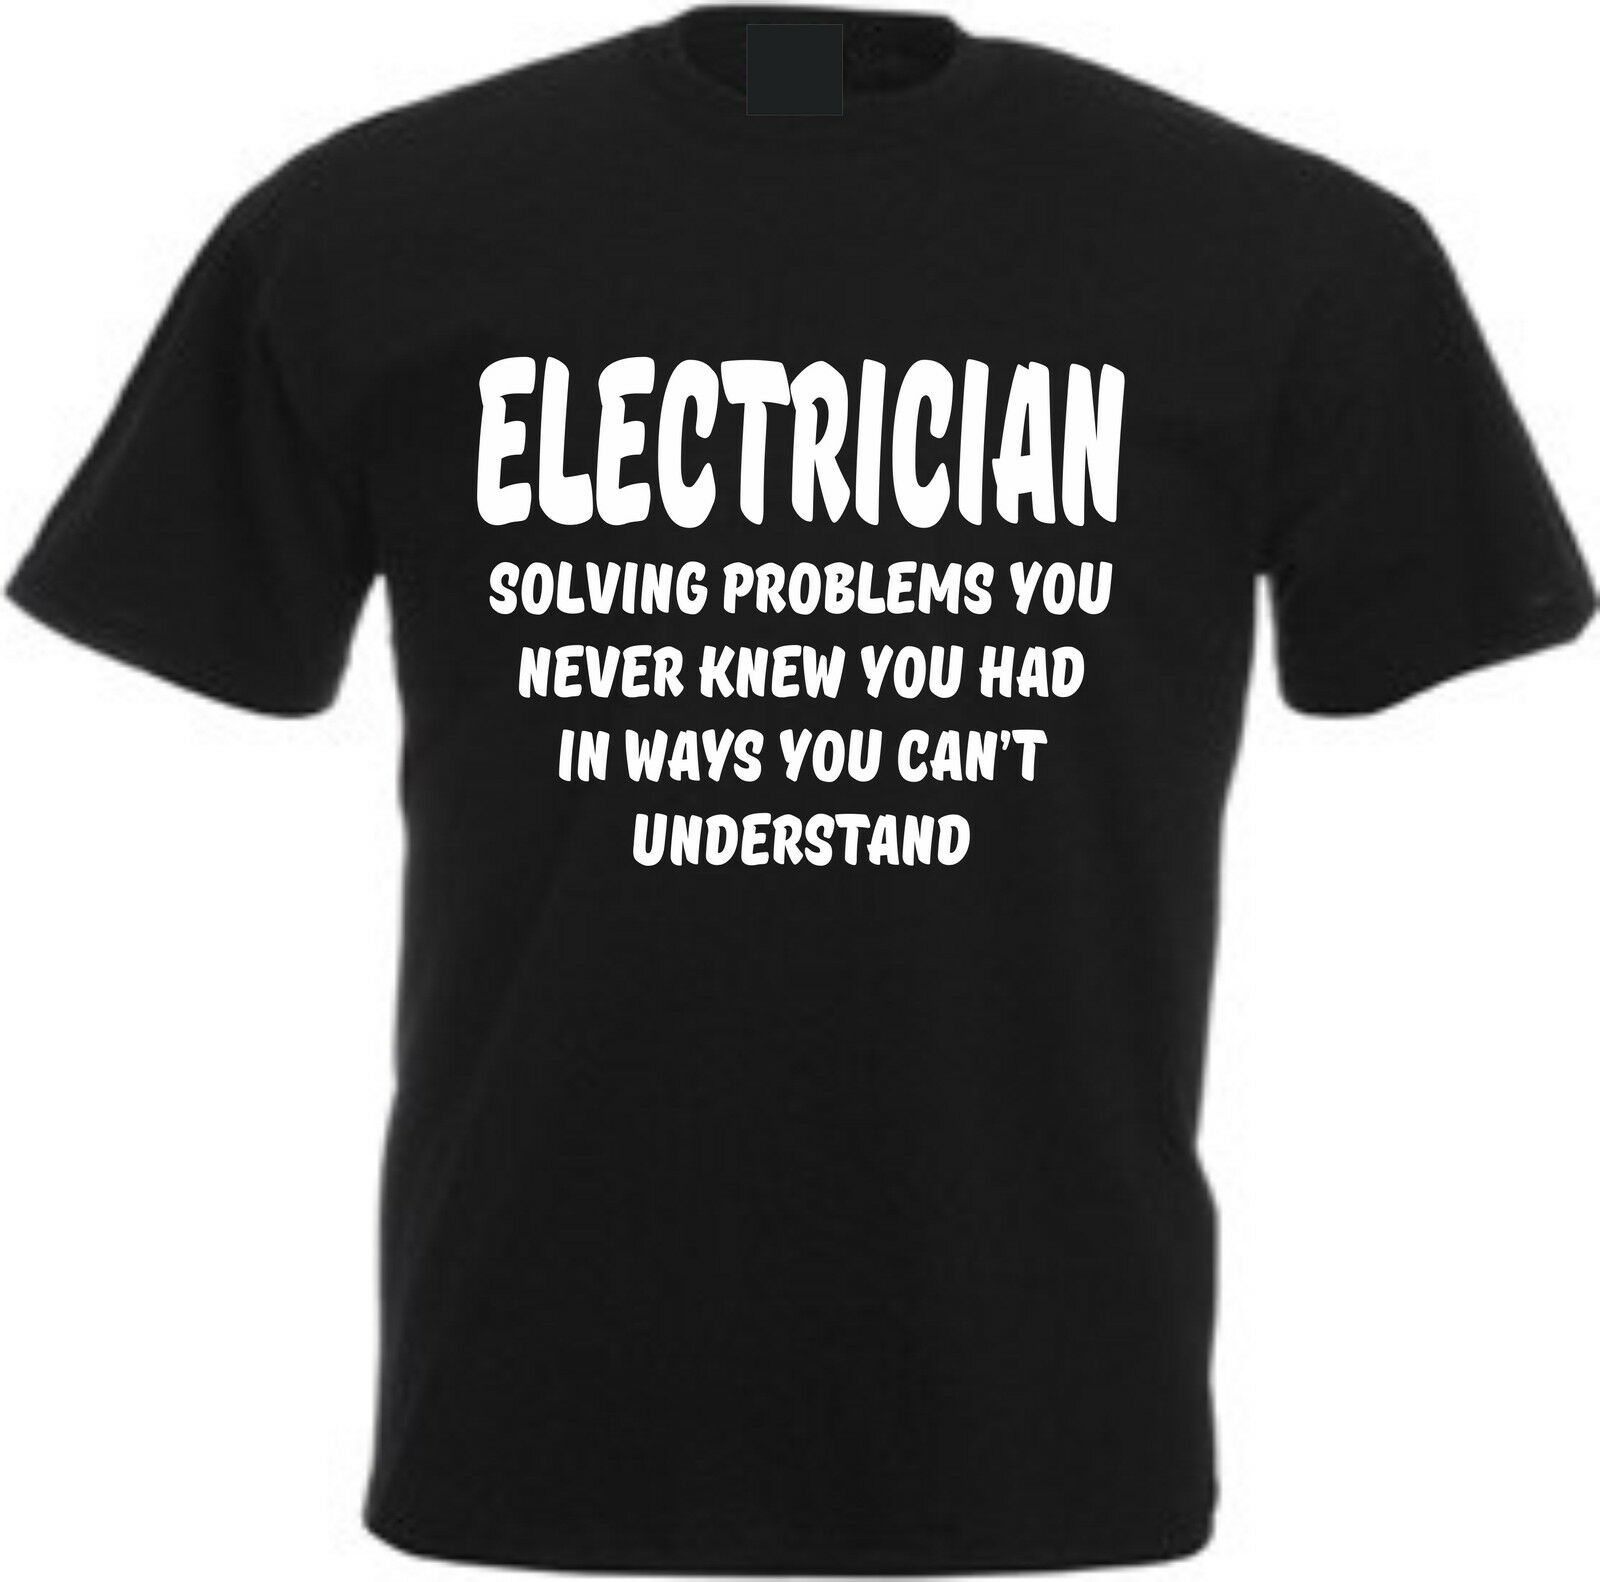 ELECTRICIAN SOLVING PROBLEMS YOU NEVER KNEW YOU HAD FUNNY COTTON SPARKY T SHIRTSummer Men'S fashion Tee